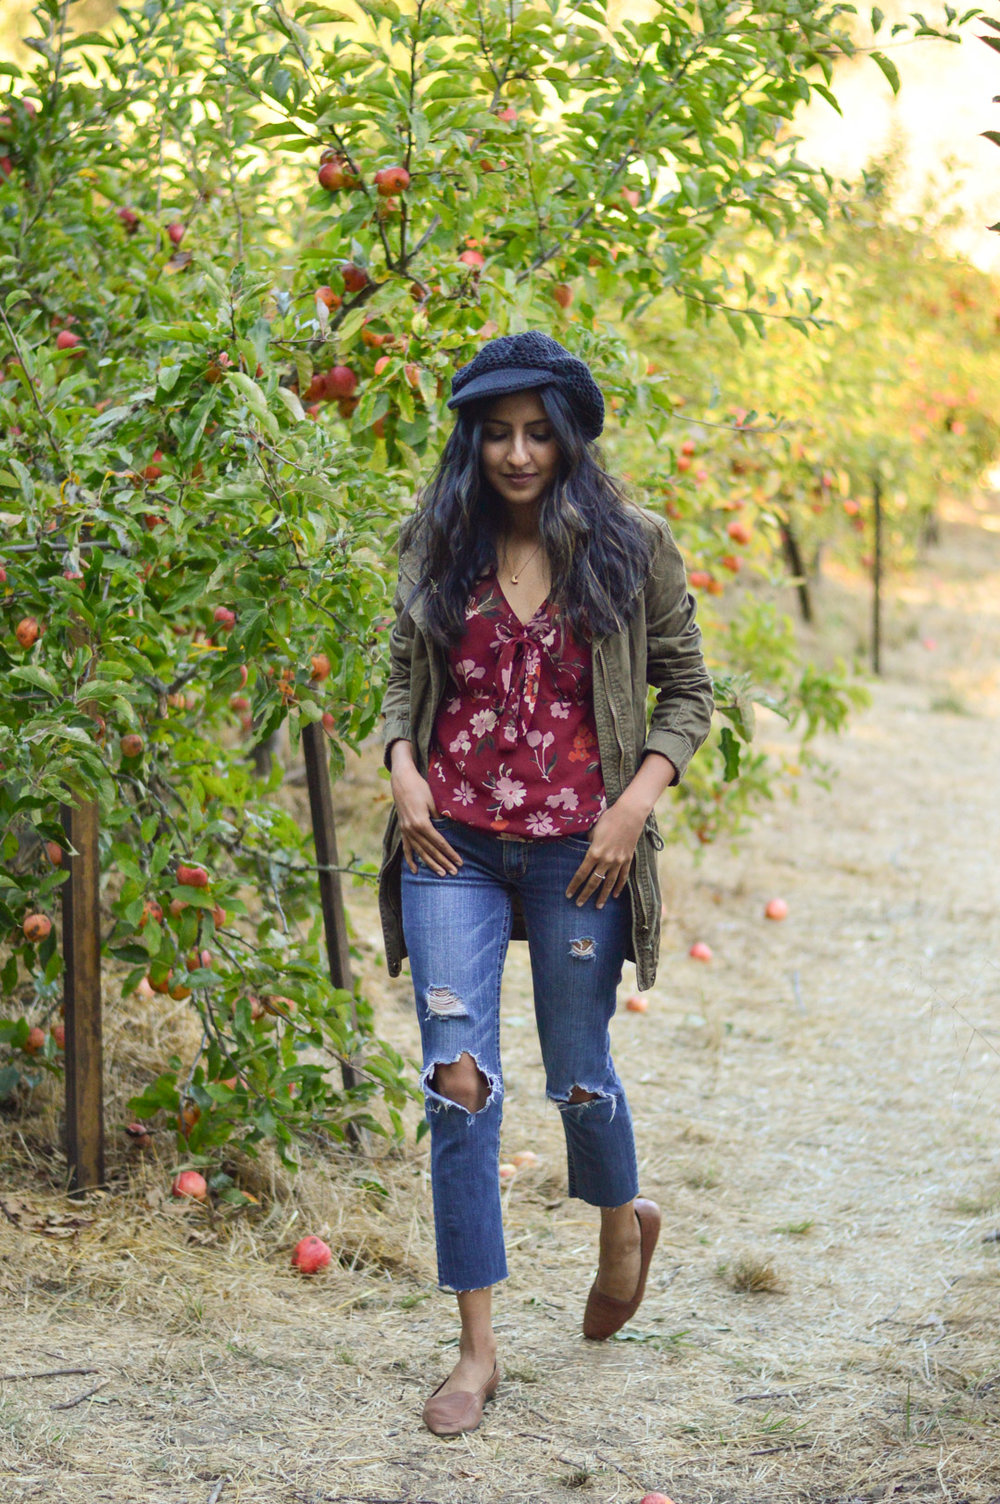 apple-picking-fall-florals-utility-jacket-california-style-fall-activities 8